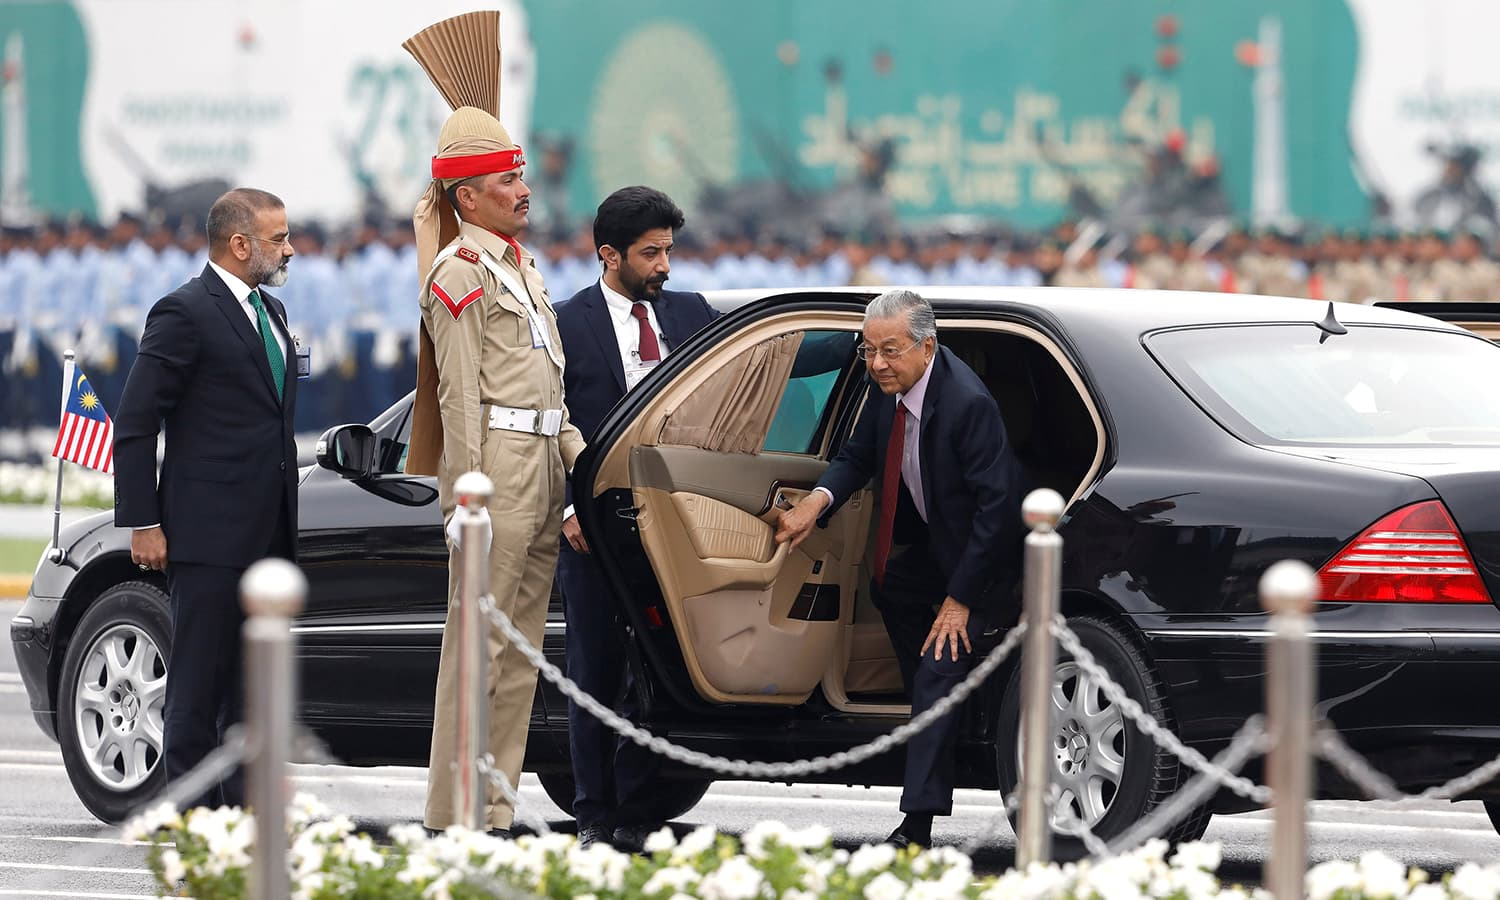 Chief guest Malaysian Prime Minister Mahathir Mohamad (R) arrives to attend the Pakistan Day military parade in Islamabad on March 23, 2019. ─ Reuters